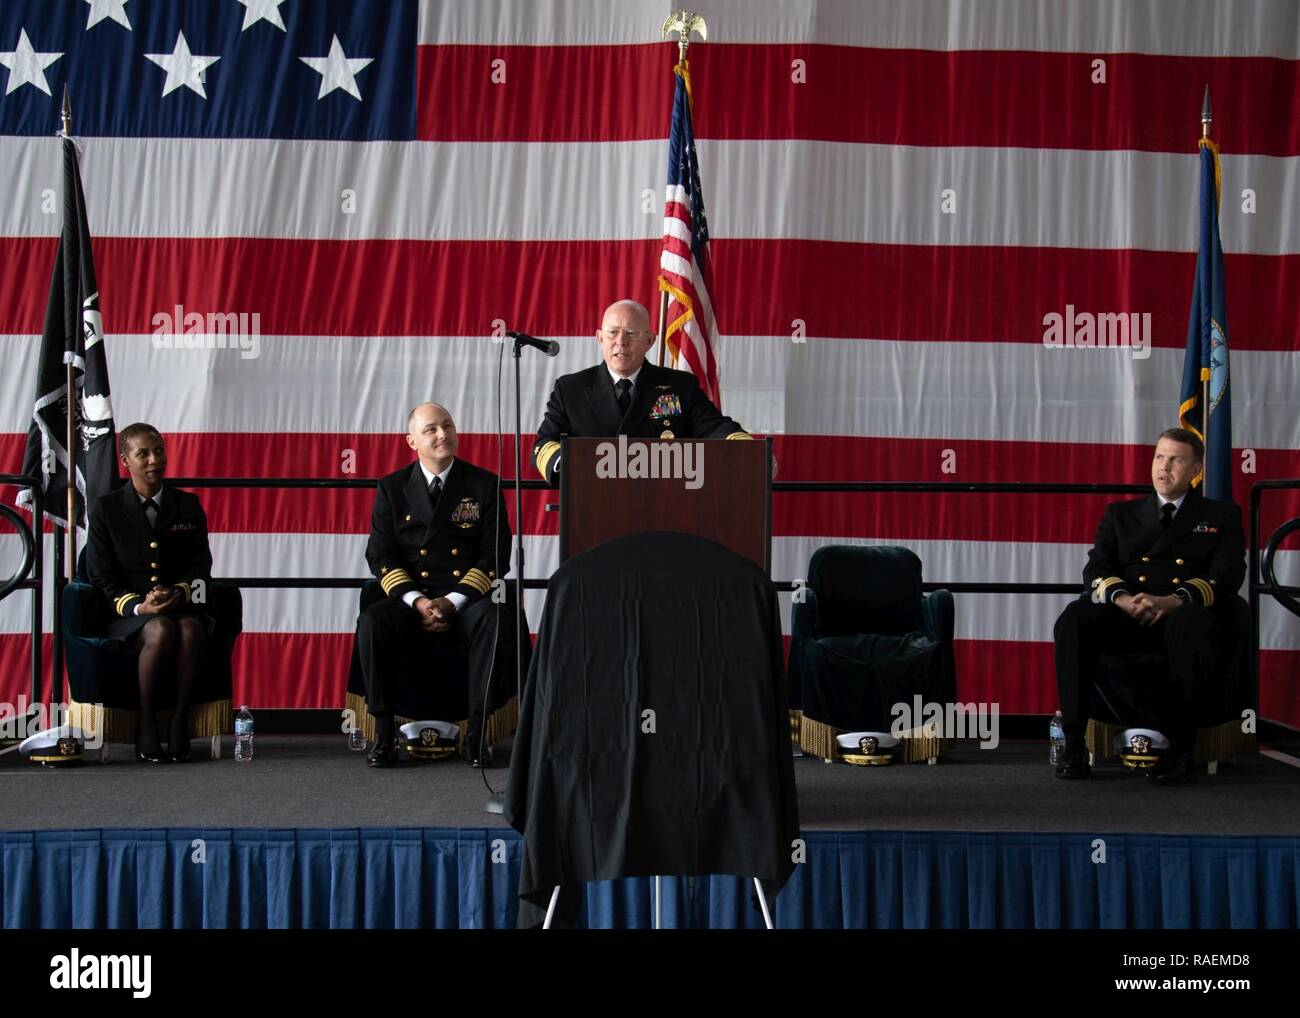 """CORONADO, Calif. (Dec. 14, 2018) Vice Adm. DeWolfe H. Miller III, Commander, Naval Air Forces, speaks at the establishment ceremony of Fleet Logistics Multi-Mission Squadron 30 """"Titans"""" (VRM-30). VRM-30 is the Navy's first CMV-22B Opsrey squadron and was established to begin the Navy's transition from the C-2A Greyhound. U.S. Navy - Stock Image"""